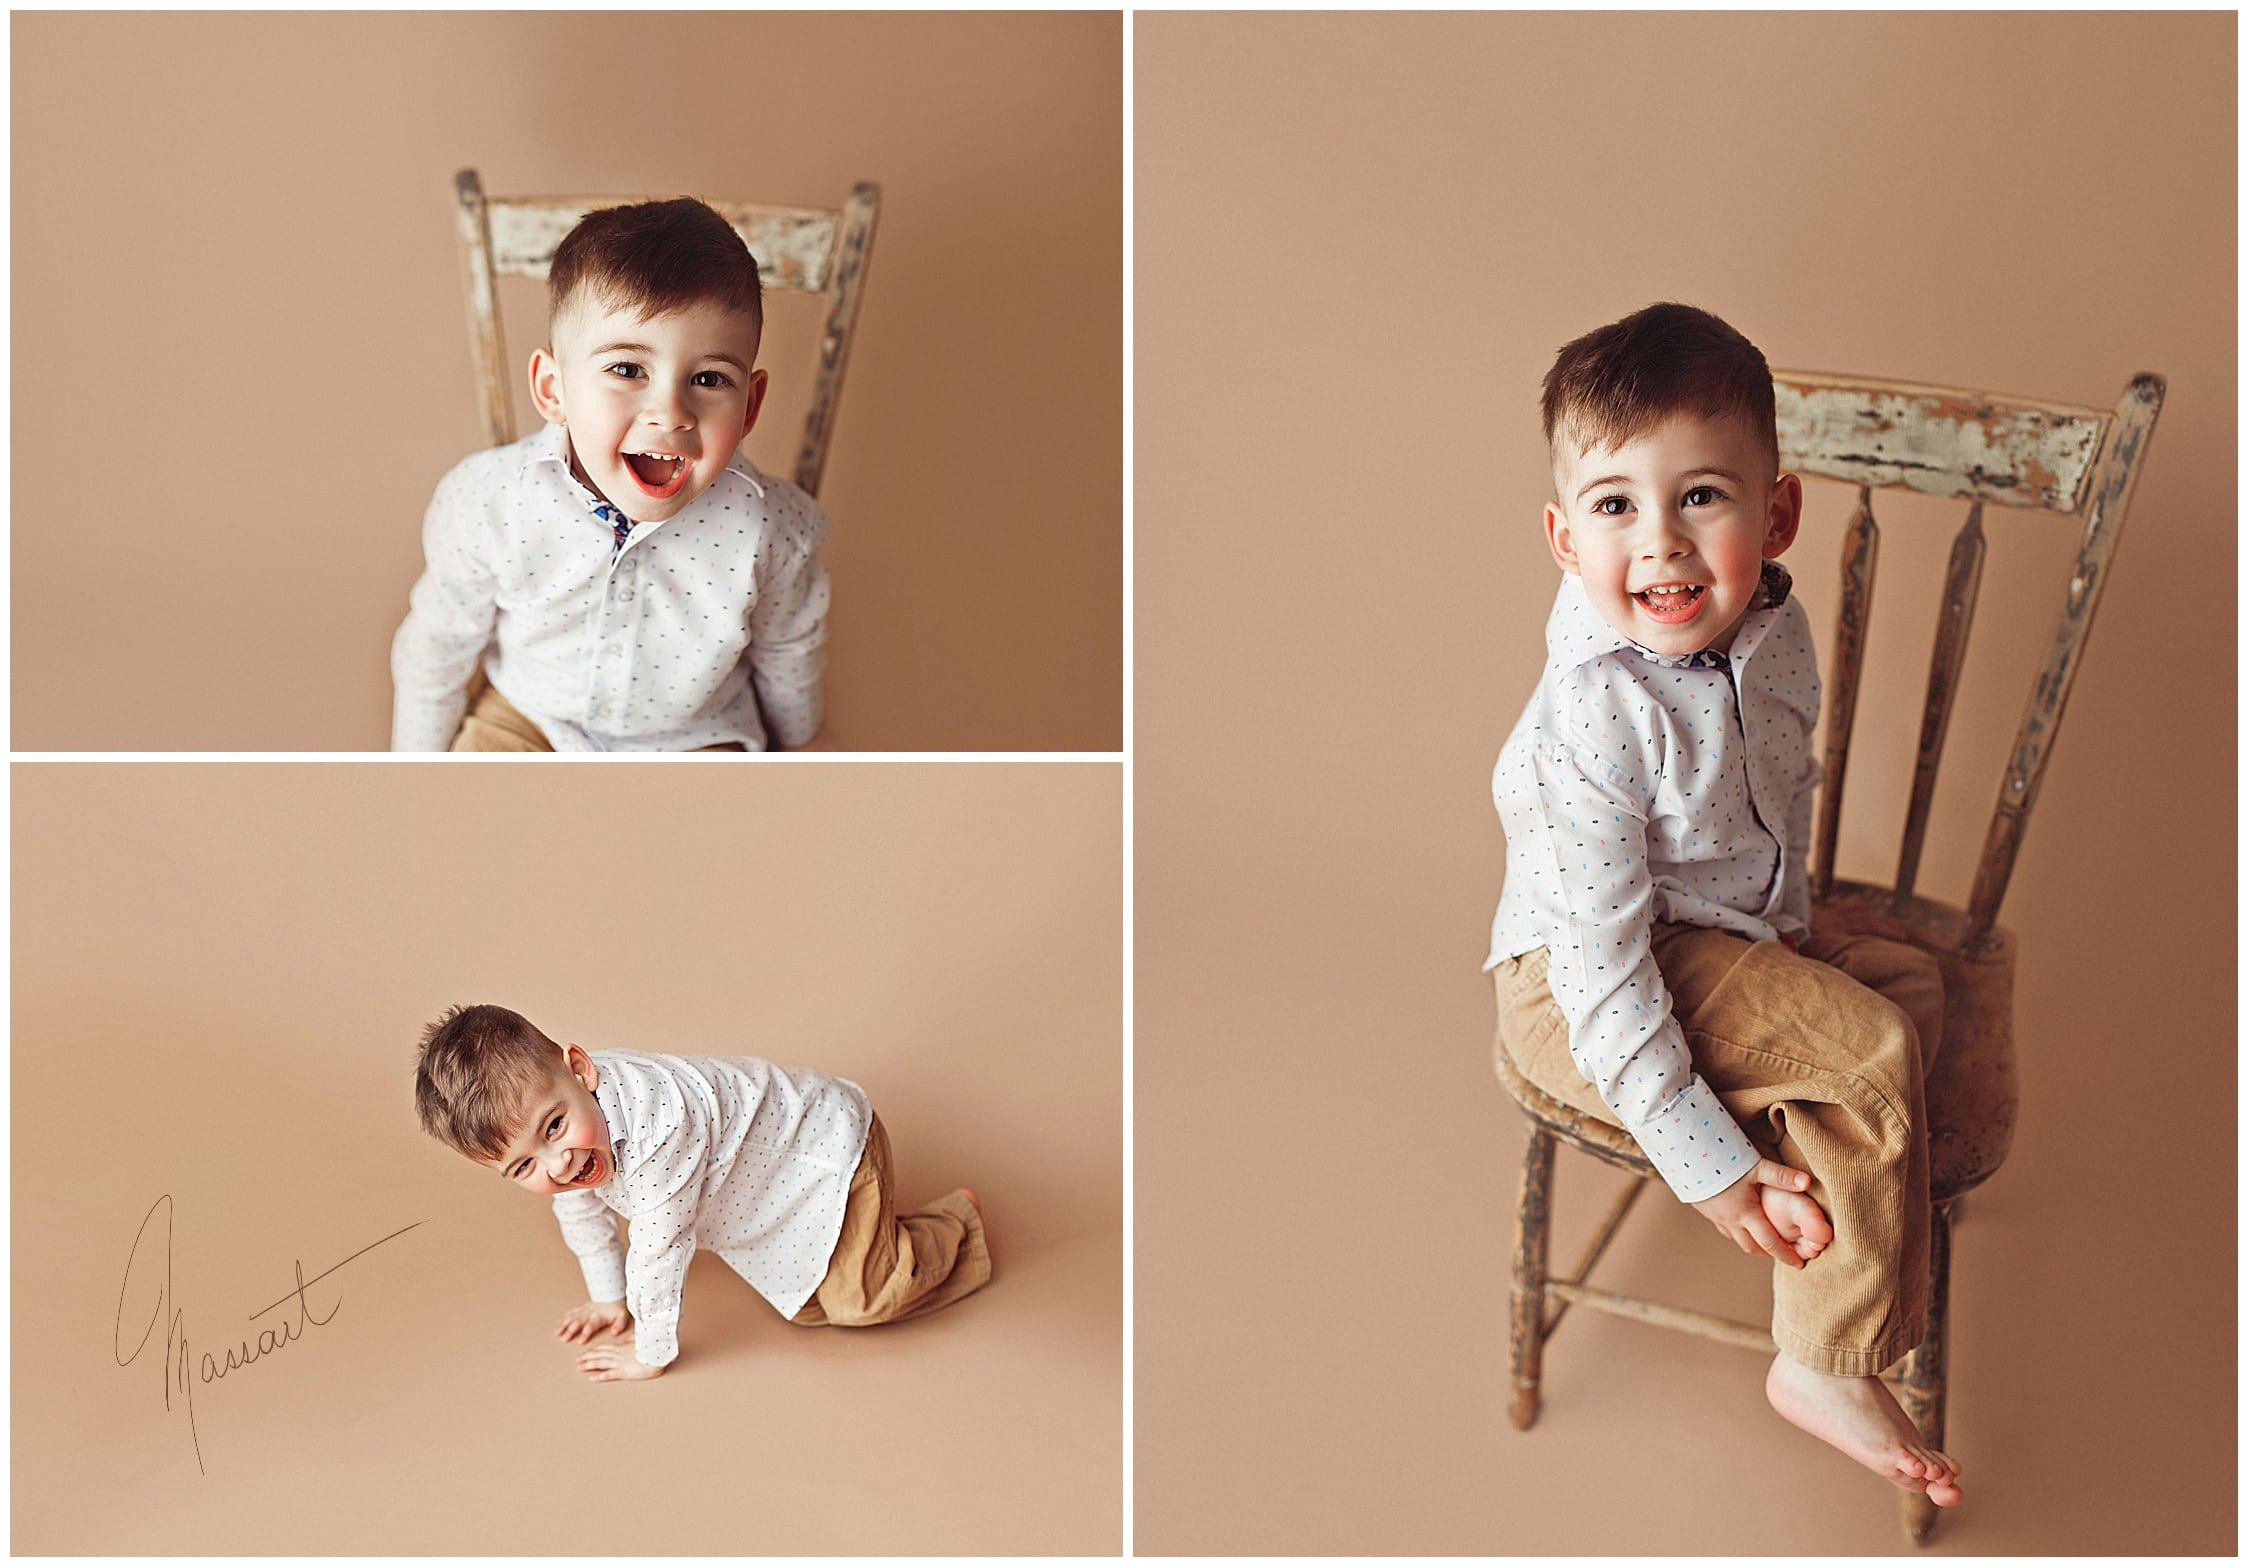 Timeless images of a boy during a family session in studio at Massart Photography